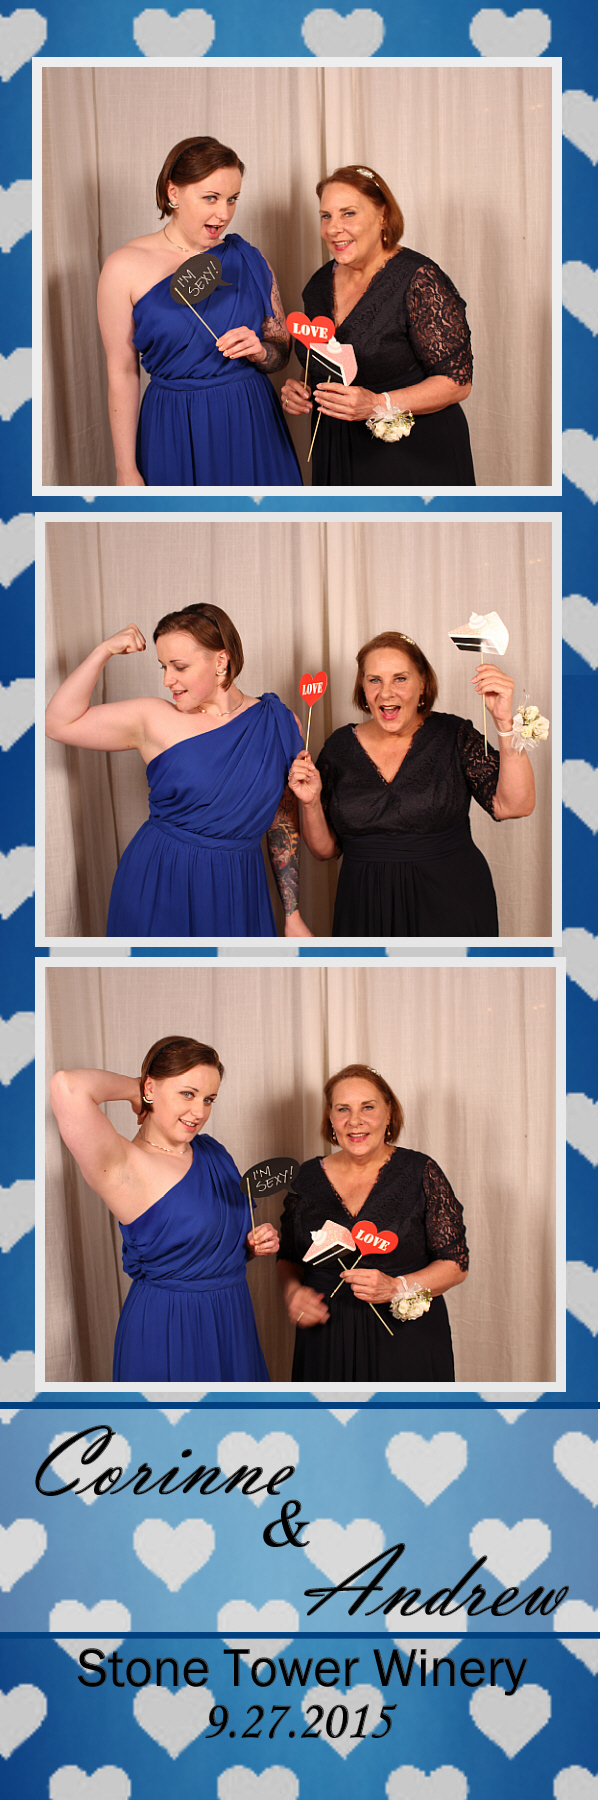 Guest House Events Photo Booth C&A (30).jpg